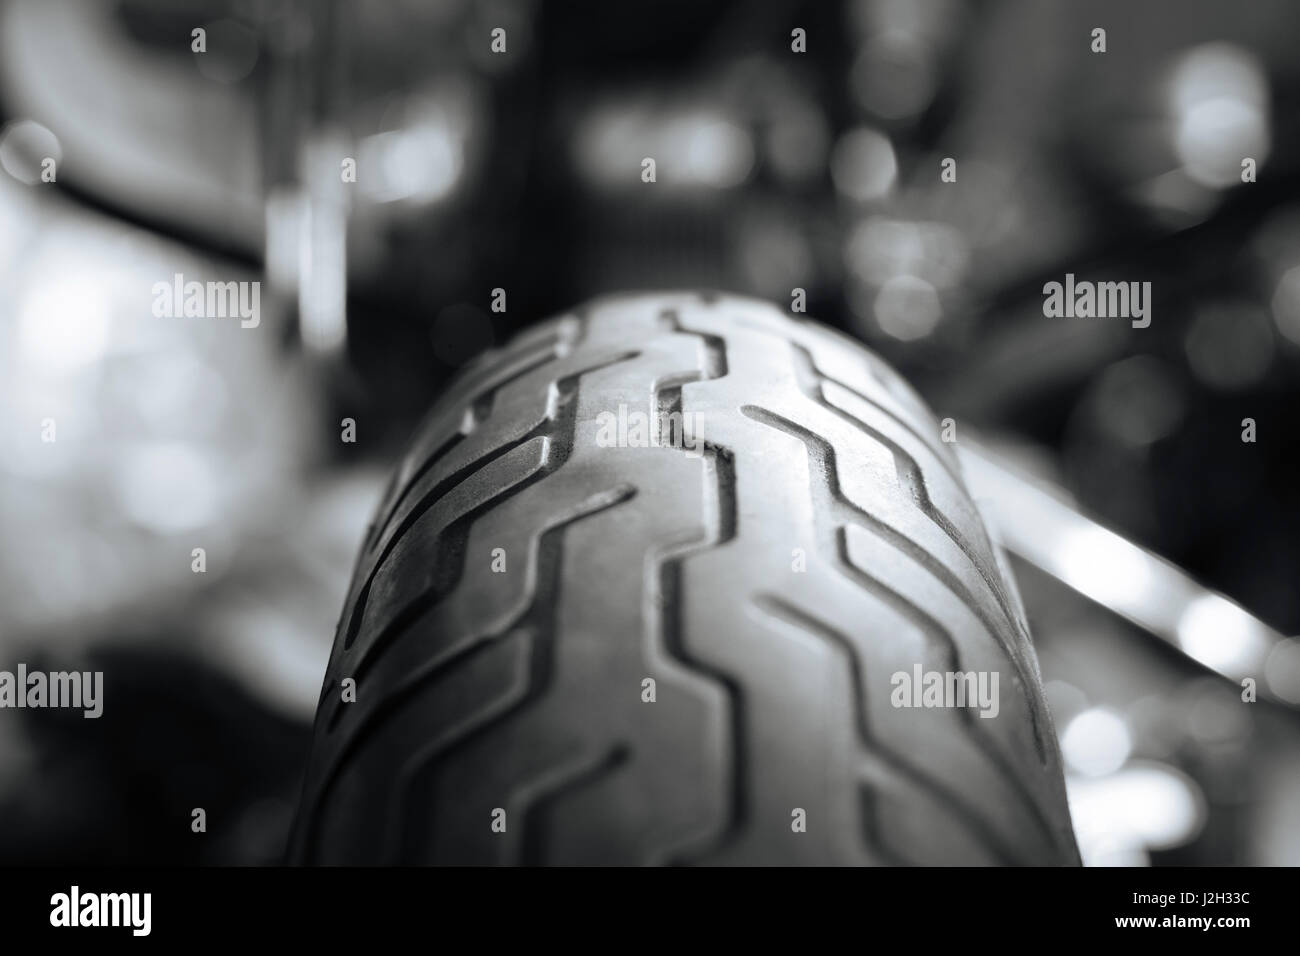 Picture of a tires tricky pattern - Stock Image